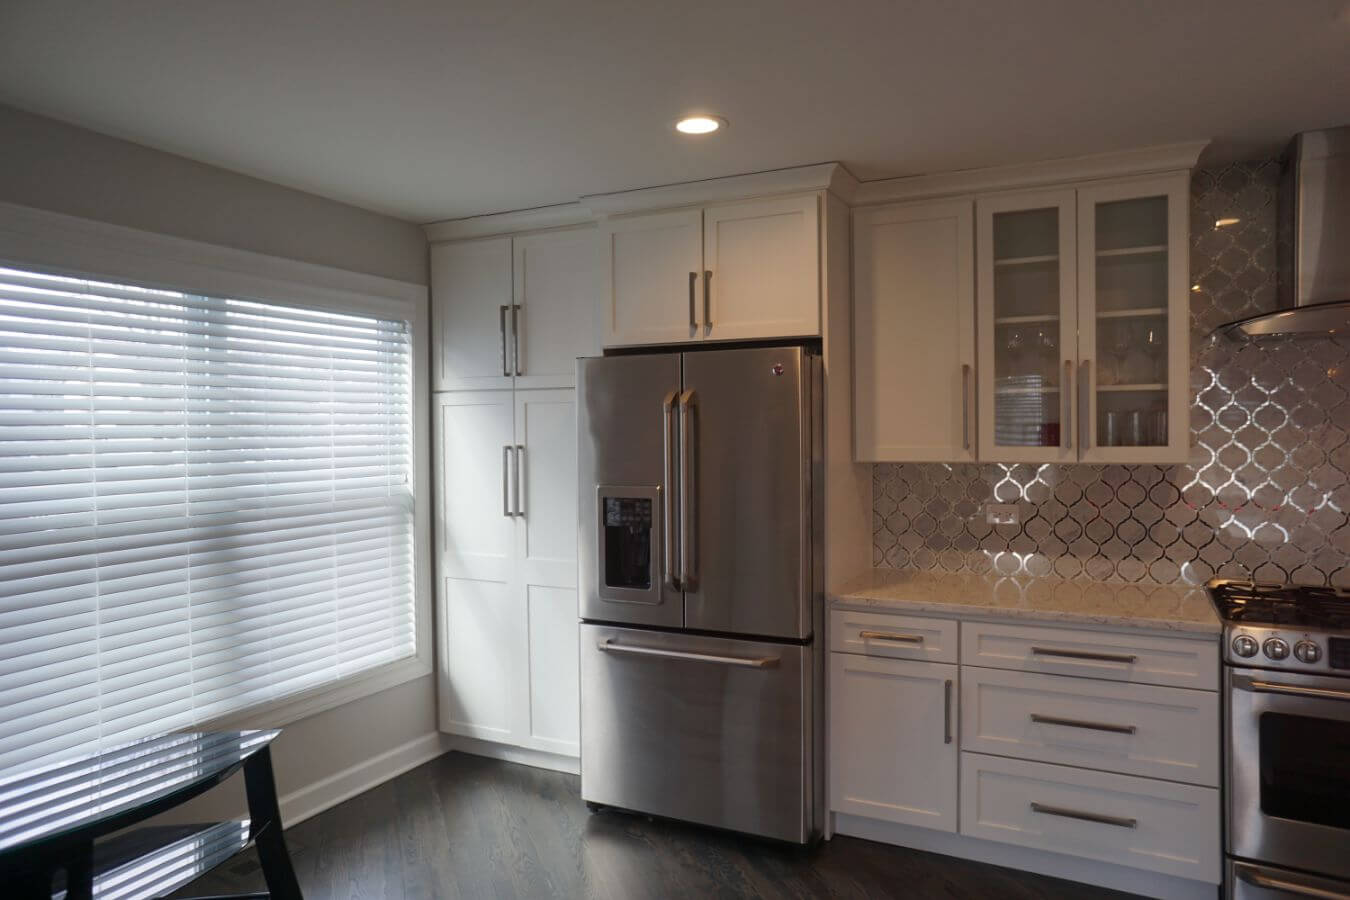 Kitchen Remodel Contractor Arlington Heights IL